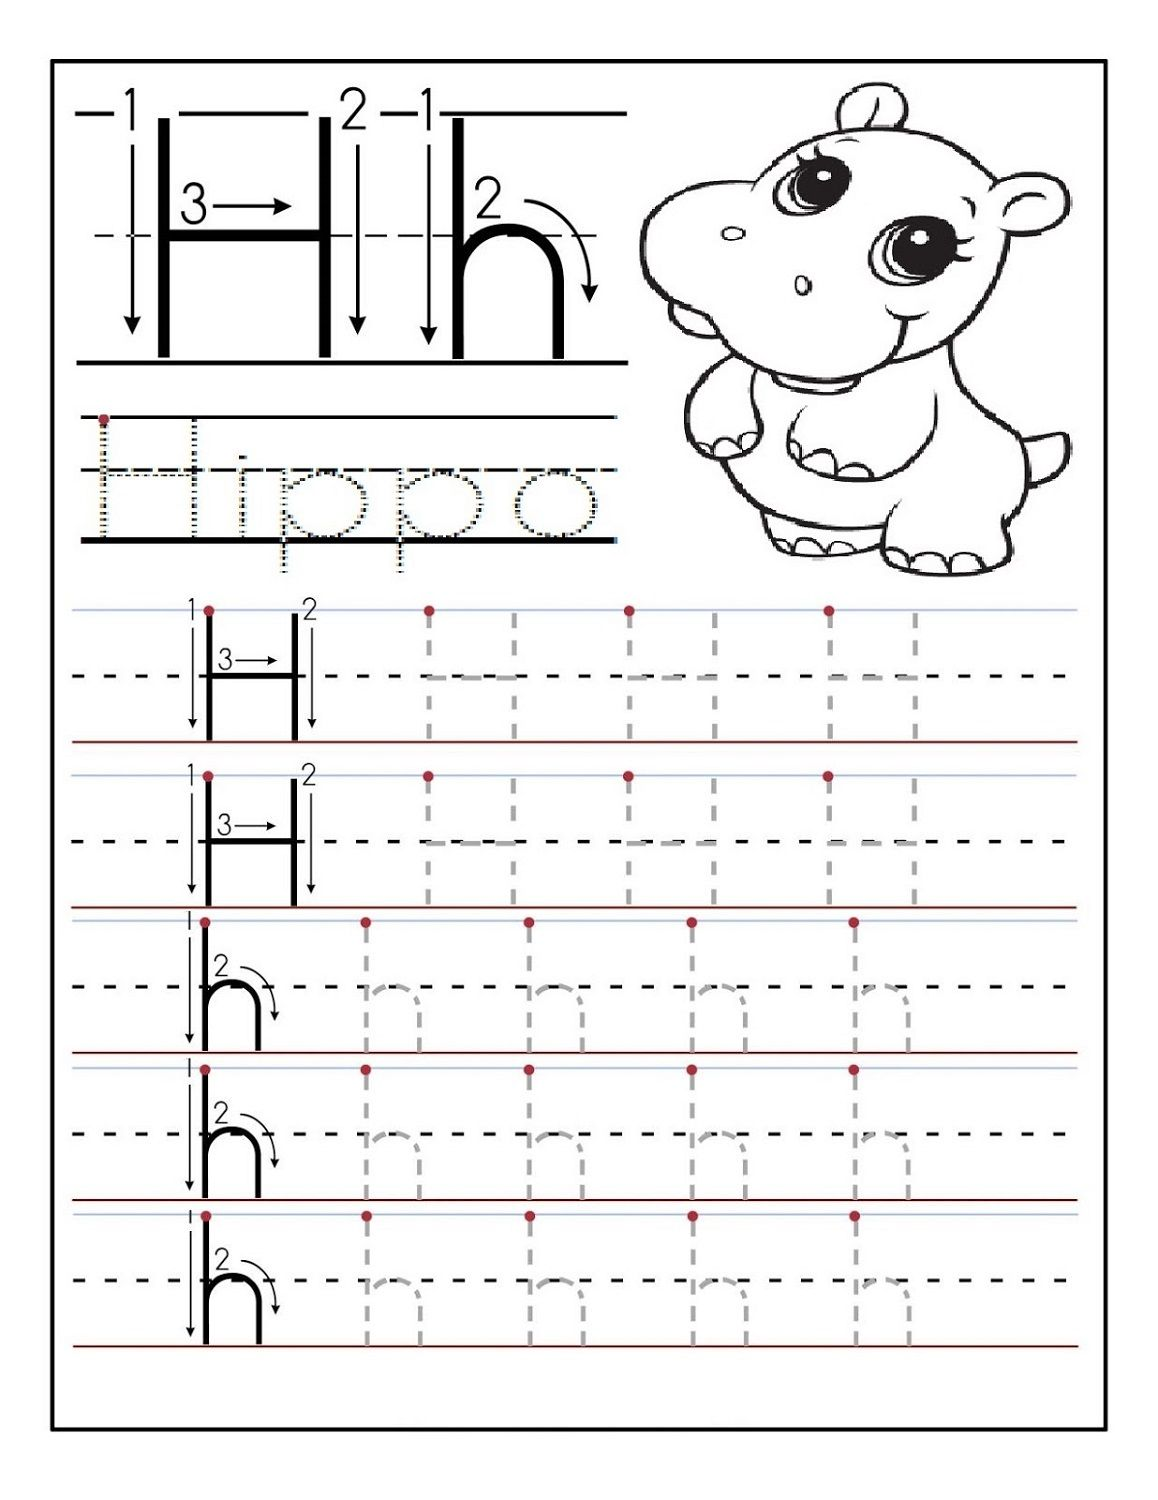 Traceable Letter Worksheets Kids Learning Activity Alphabet Worksheets Preschool Tracing Worksheets Preschool Preschool Letters